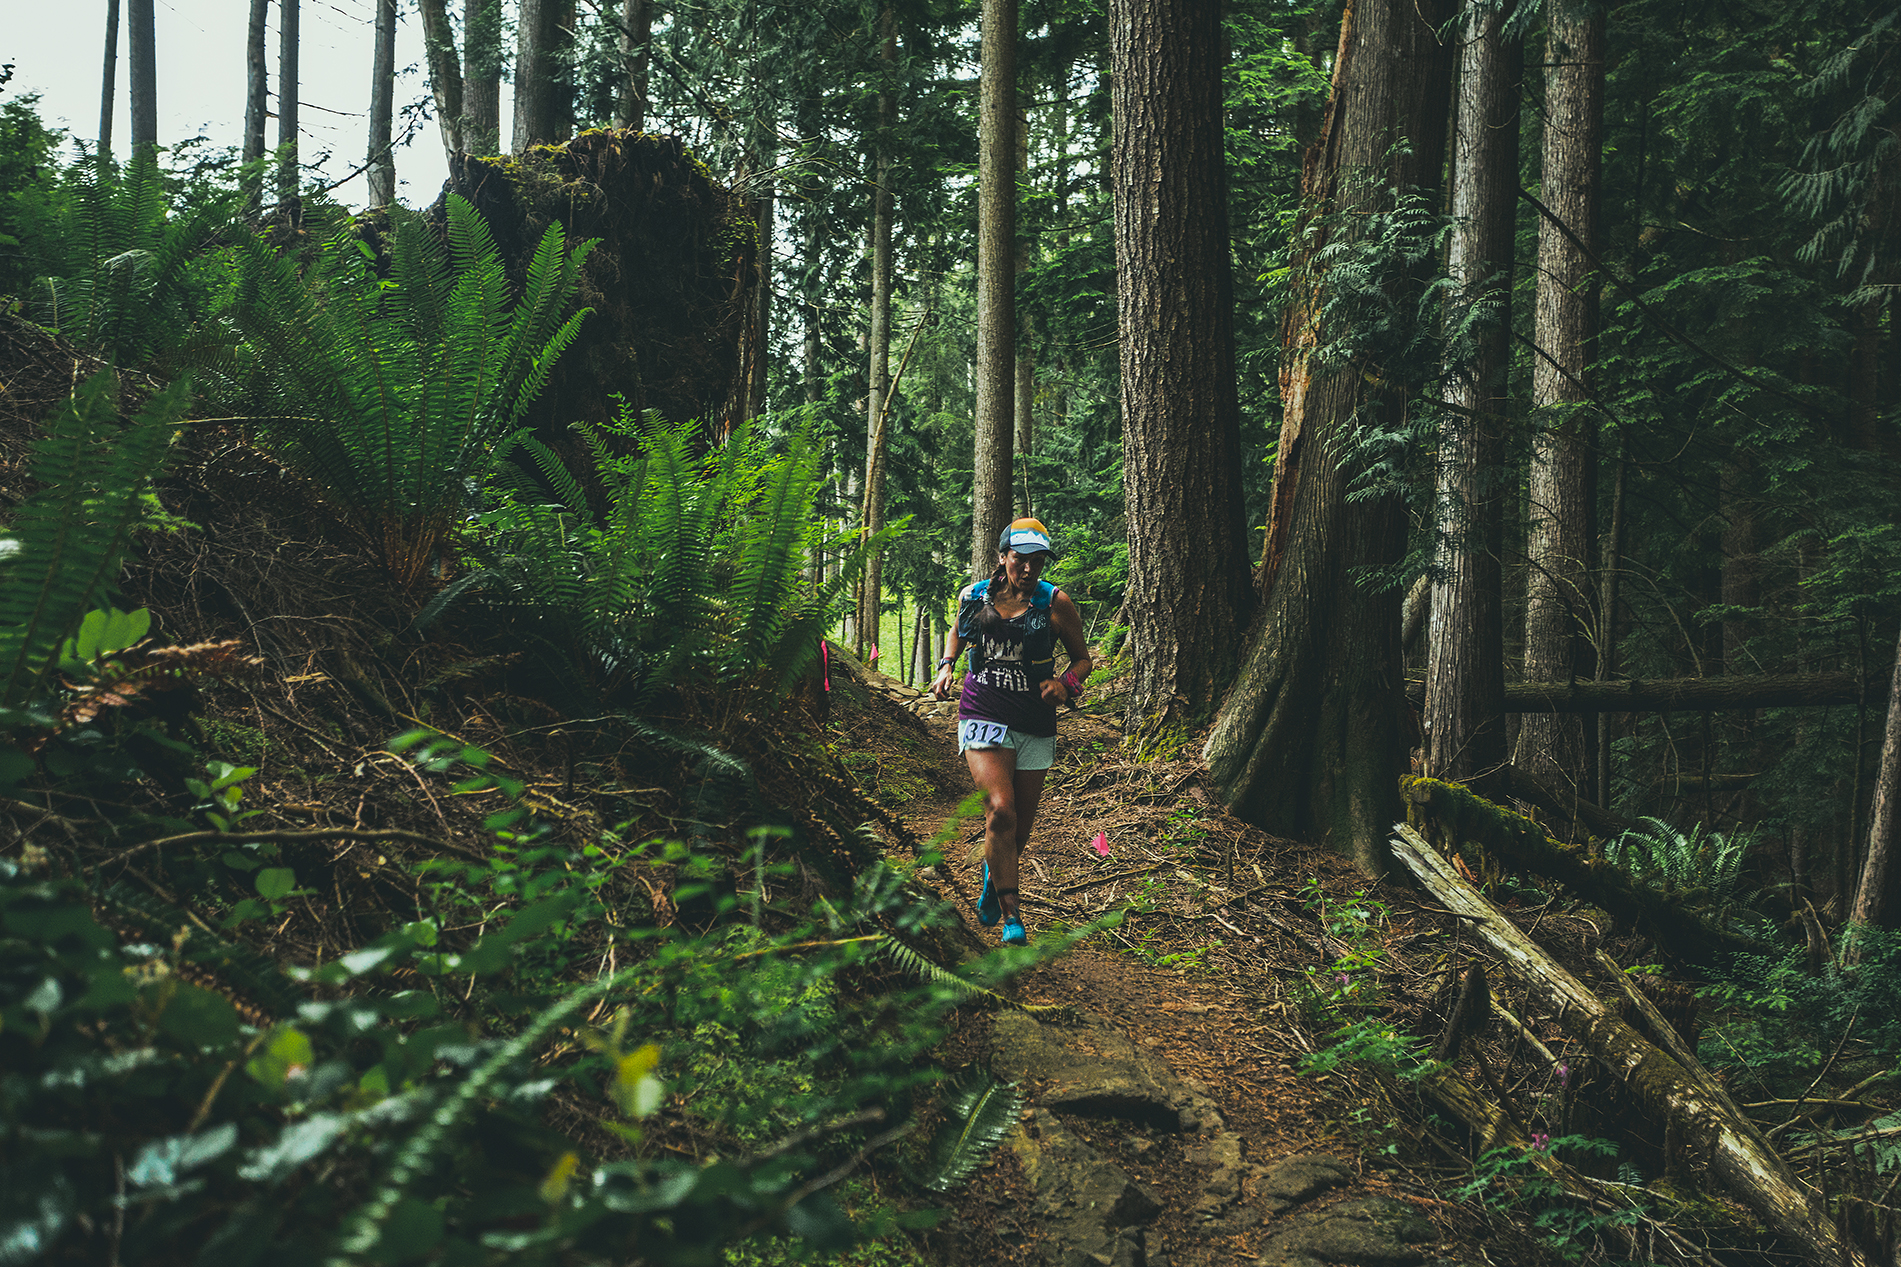 Fraser Valley Trail Races - Bear Mountain - IMG_2529 by Brice Ferre Studio - Vancouver Portrait Adventure and Athlete Photographer.jpg